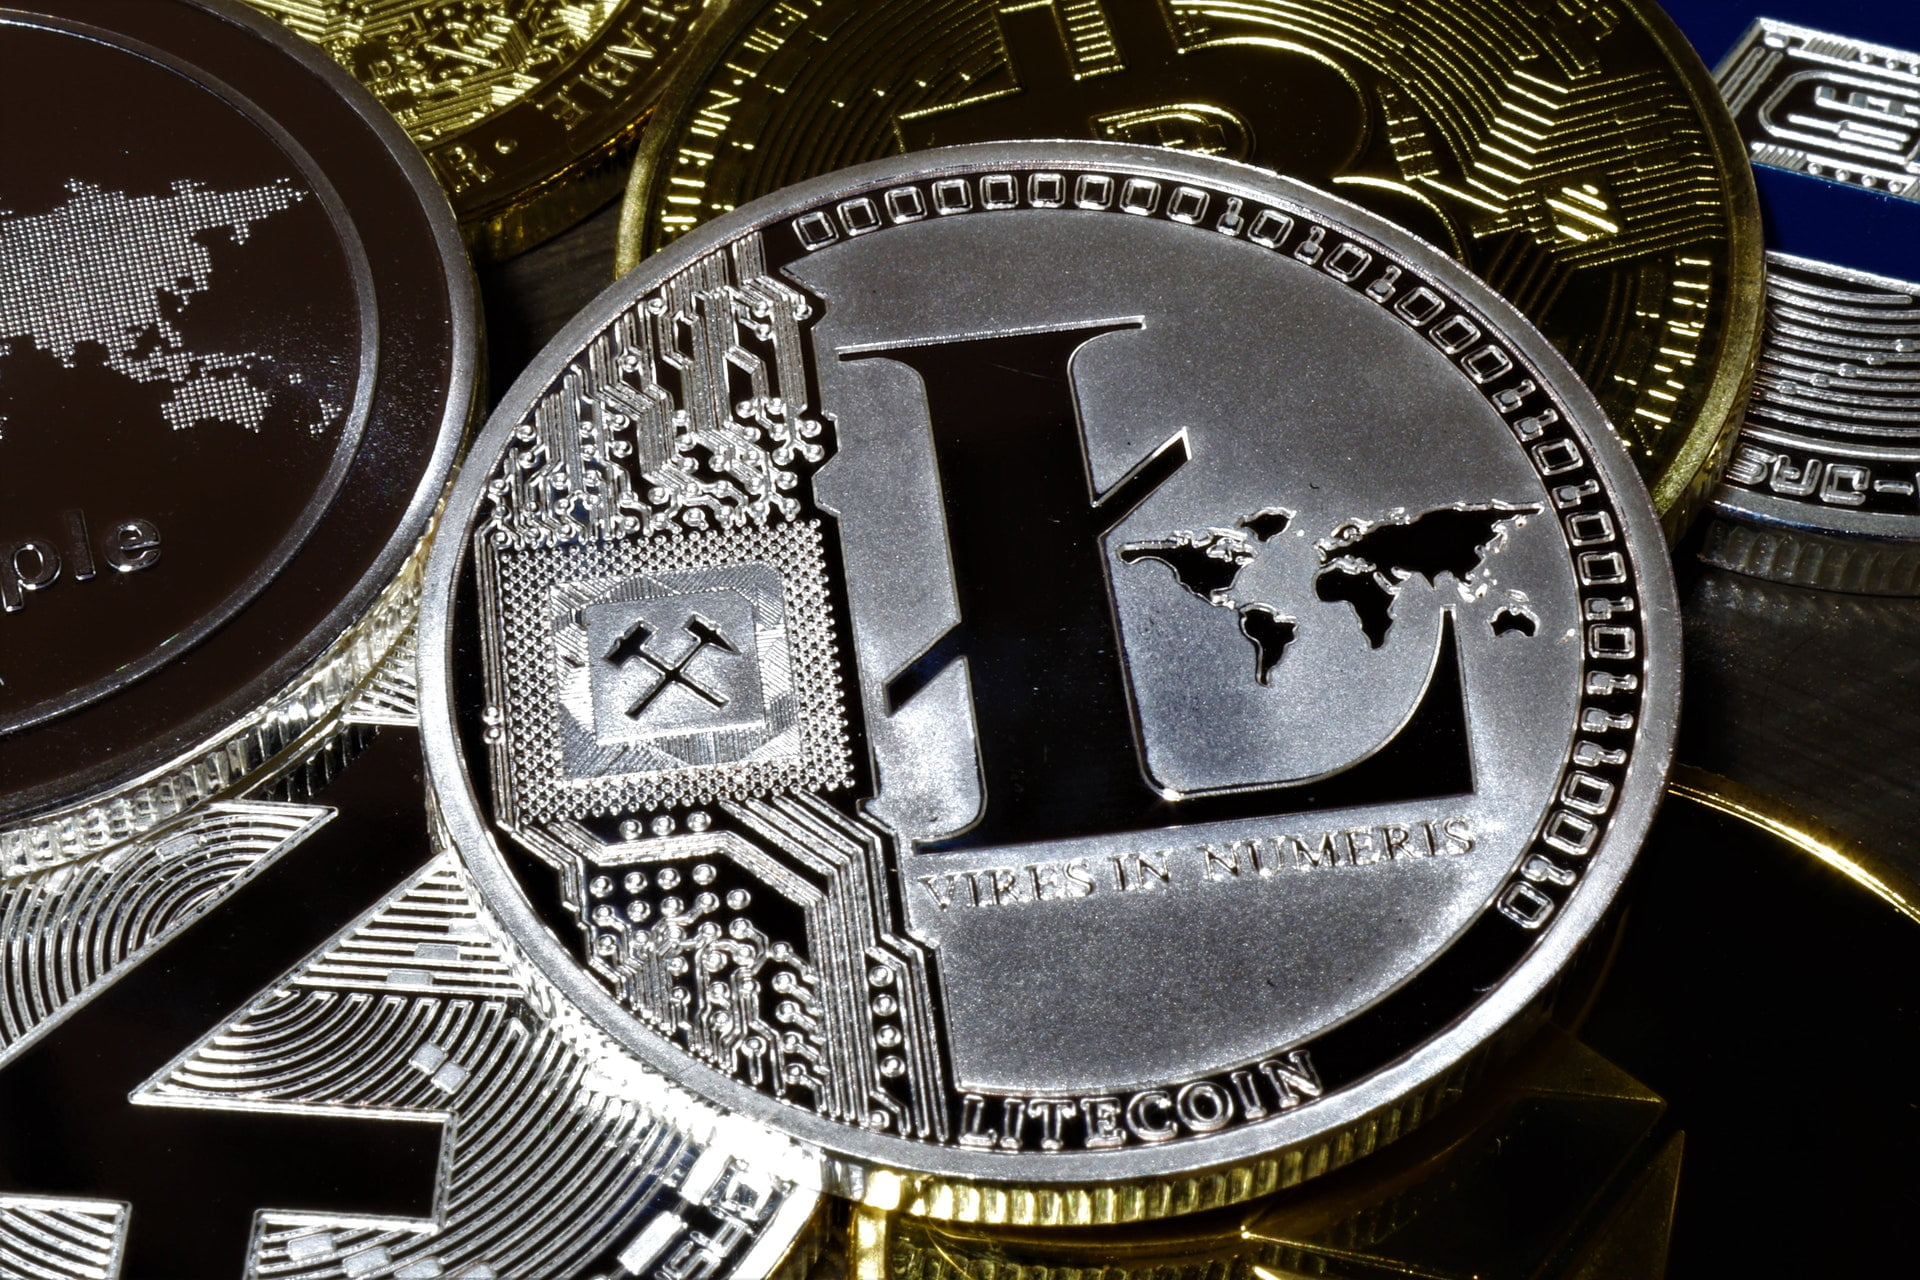 Litecoin Price Prediction 2021 How Much Will Litecoin Be Worth In 2025 2